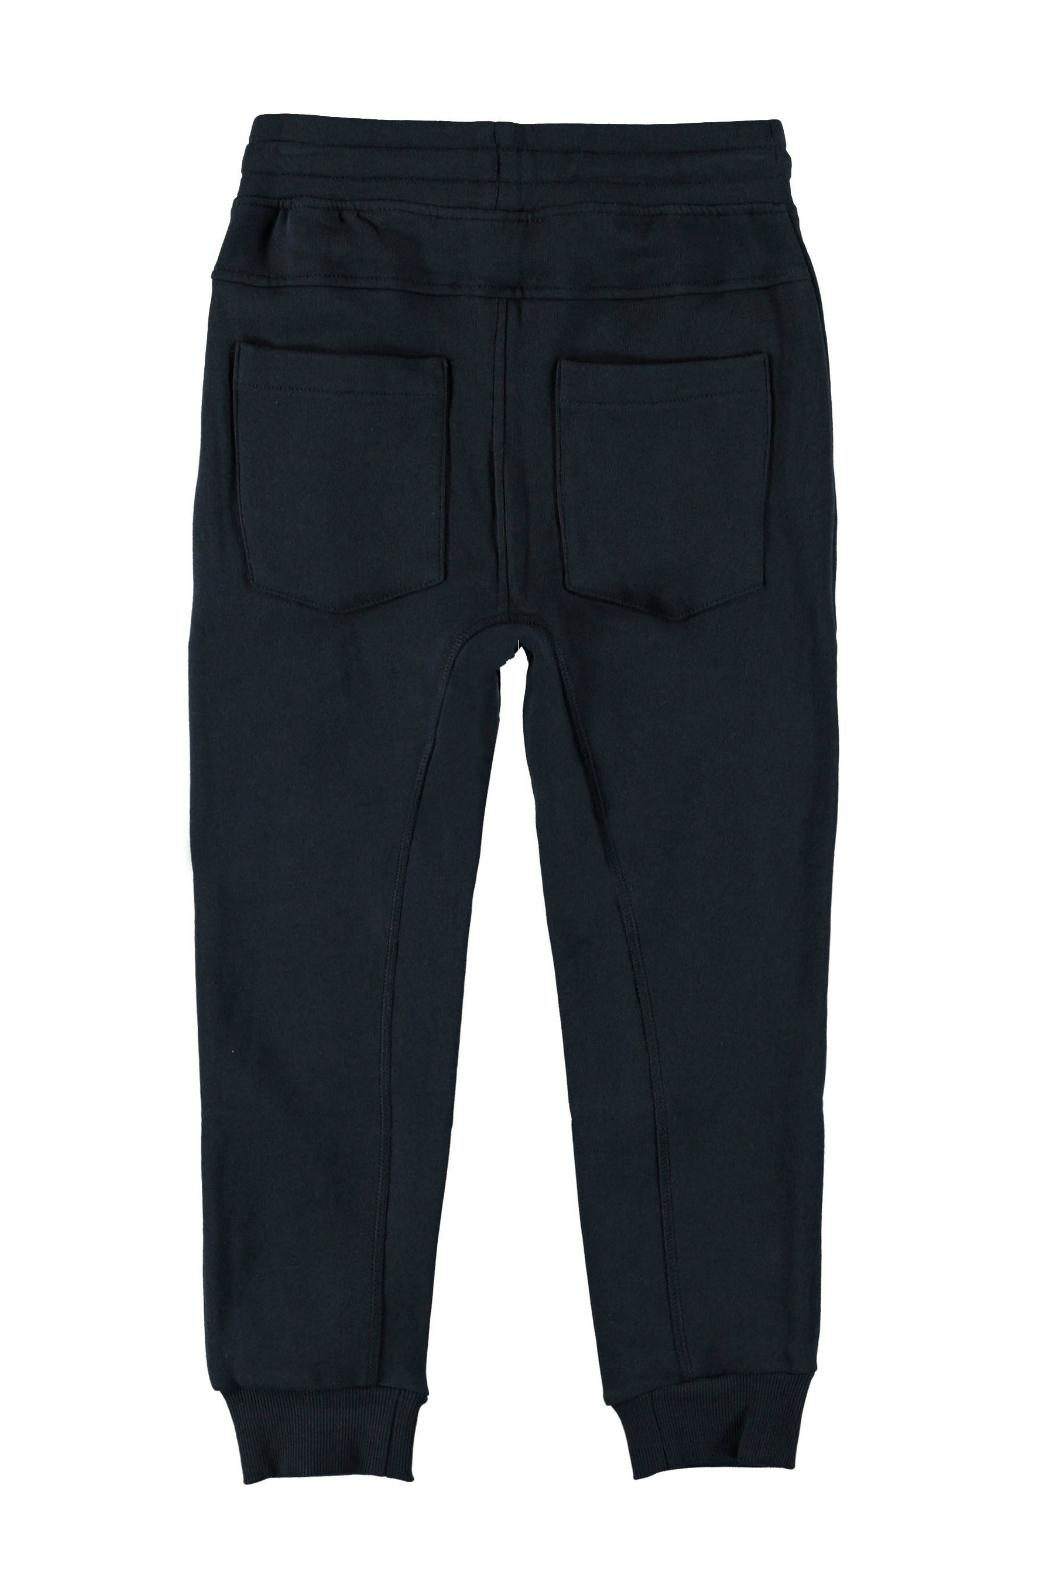 Molo Ash Carbon Trousers - Front Full Image